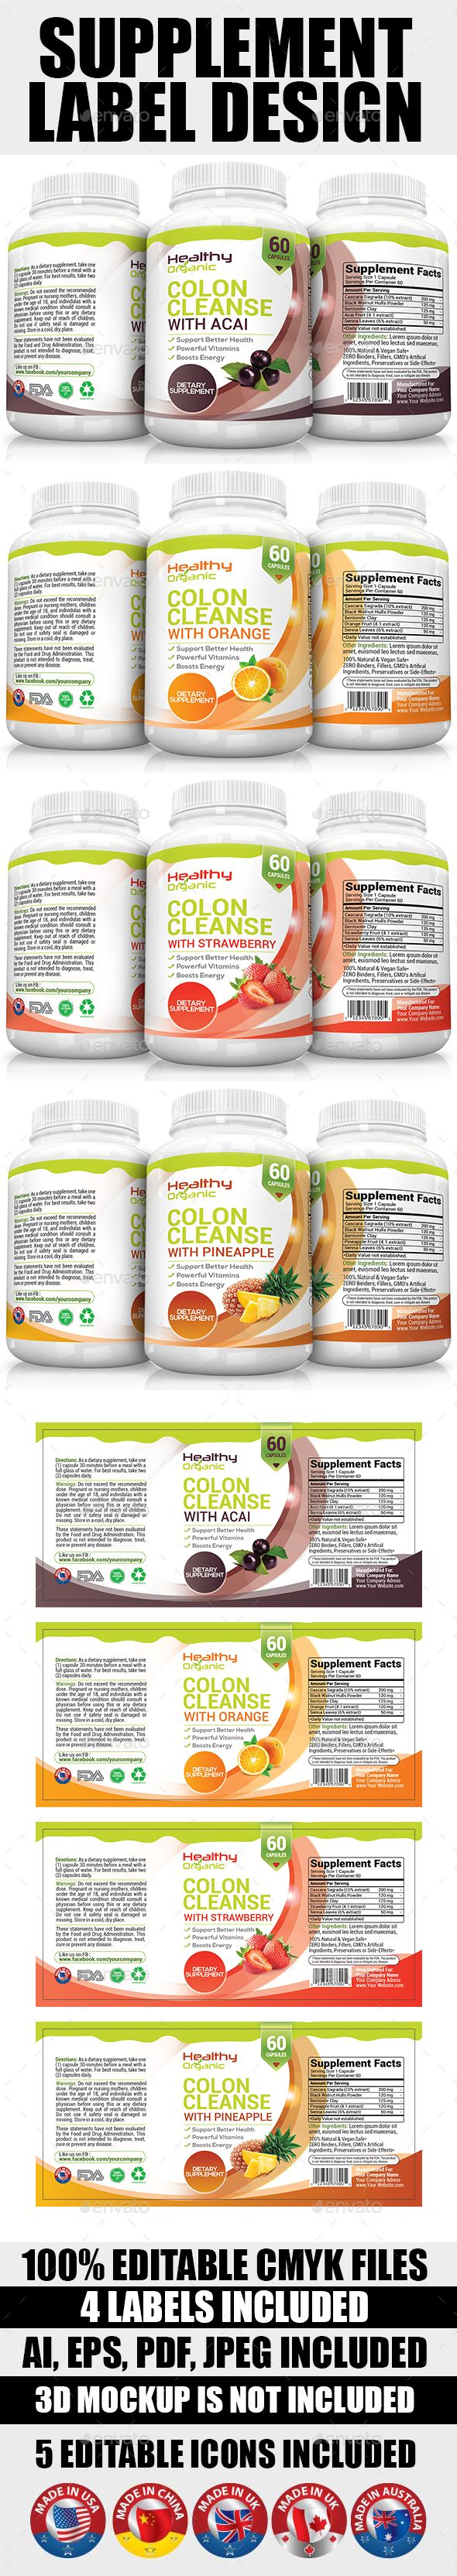 Supplement Label Template Vol-08 | Pinterest | Ideas para negocios ...